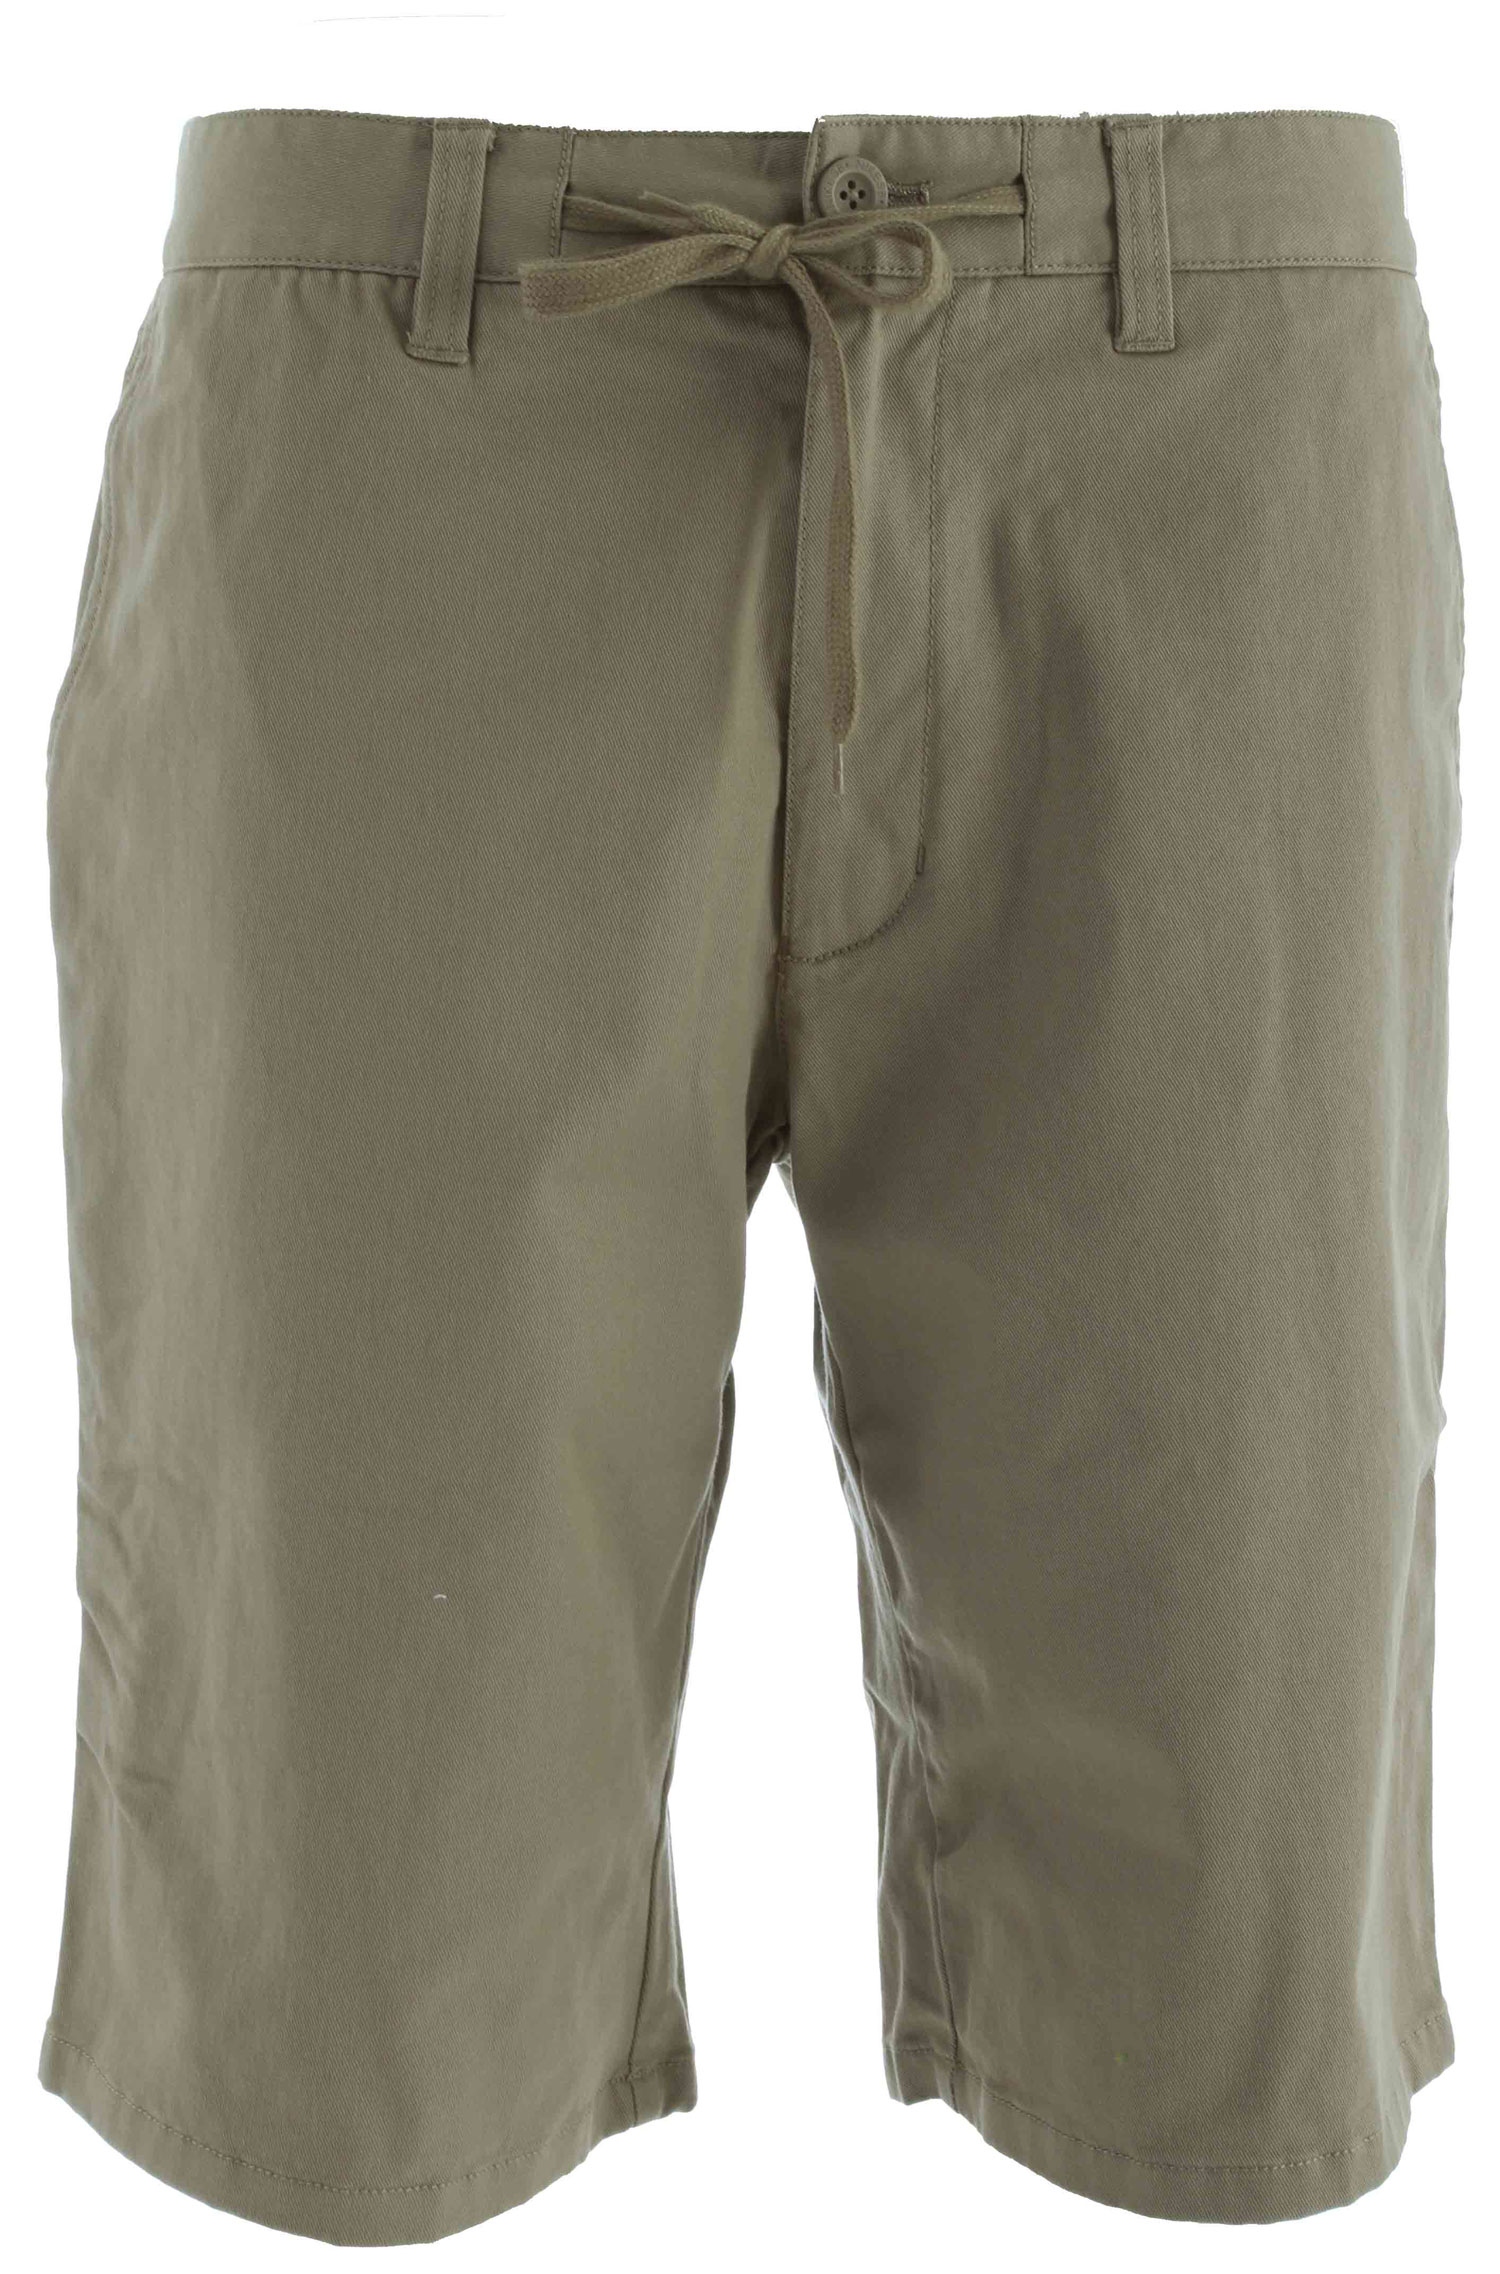 Skateboard Take your shredding skills to a new level in the Nike SB Paul Rodriguez Men's Shorts, a street-worthy design with spacious pockets in a mobile fit created by a skateboarding icon.Key Features of the Nike P-Rod Signature II Shorts: Zip front at button-through waist Side slit pockets Slit pockets at back waist Fabric: Body: 98% cotton/2% spandex. Pocket bags: 65% polyester/35% cotton. Machine wash - $40.95